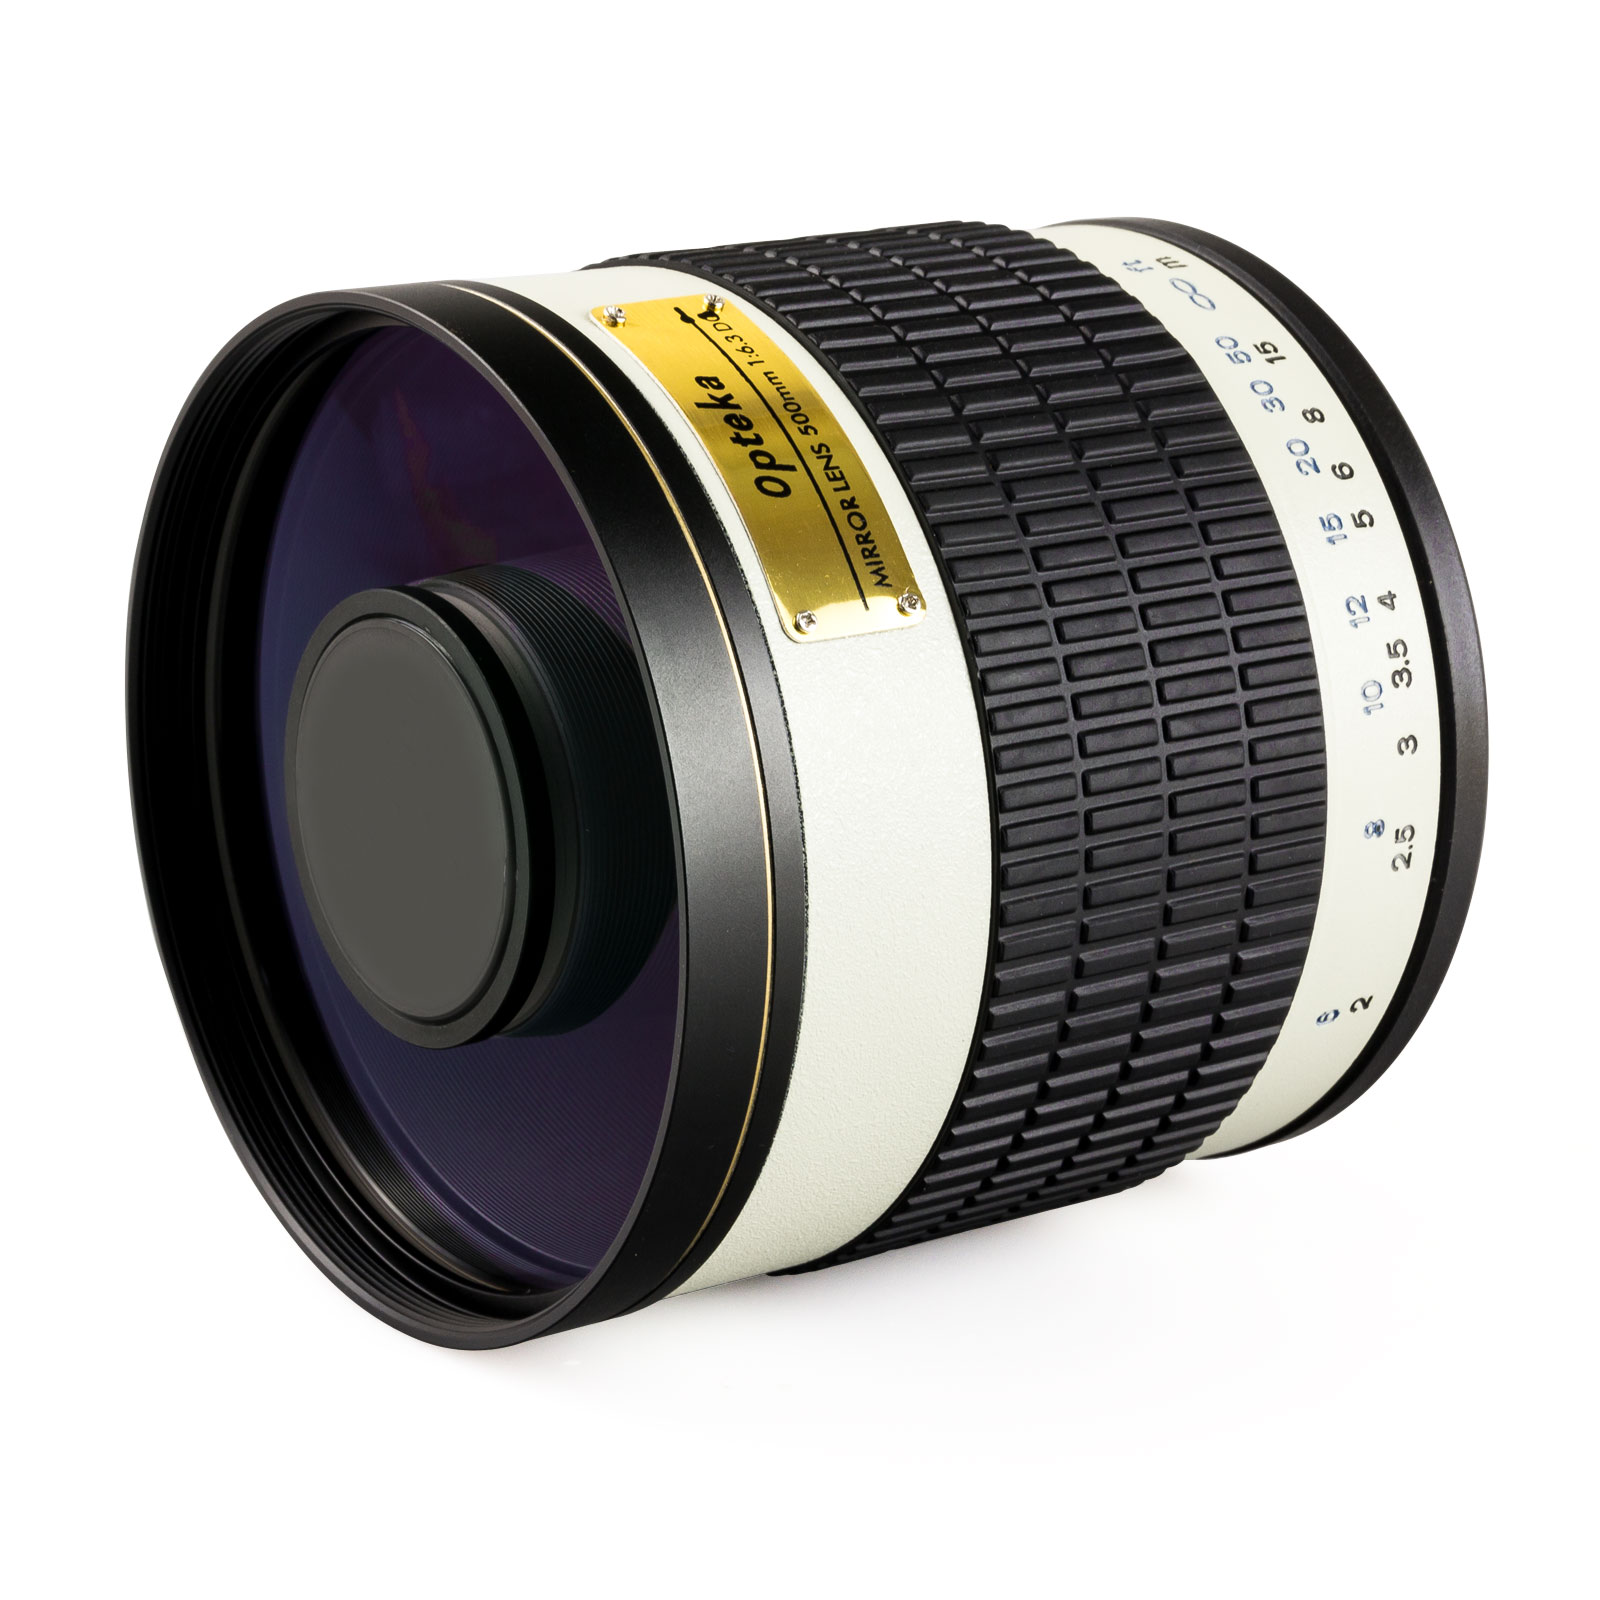 Opteka 500mm f/6.3 HD Telephoto Mirror Lens for Canon EOS-M / EOS-M3 Compact Digital Mirrorless Cameras